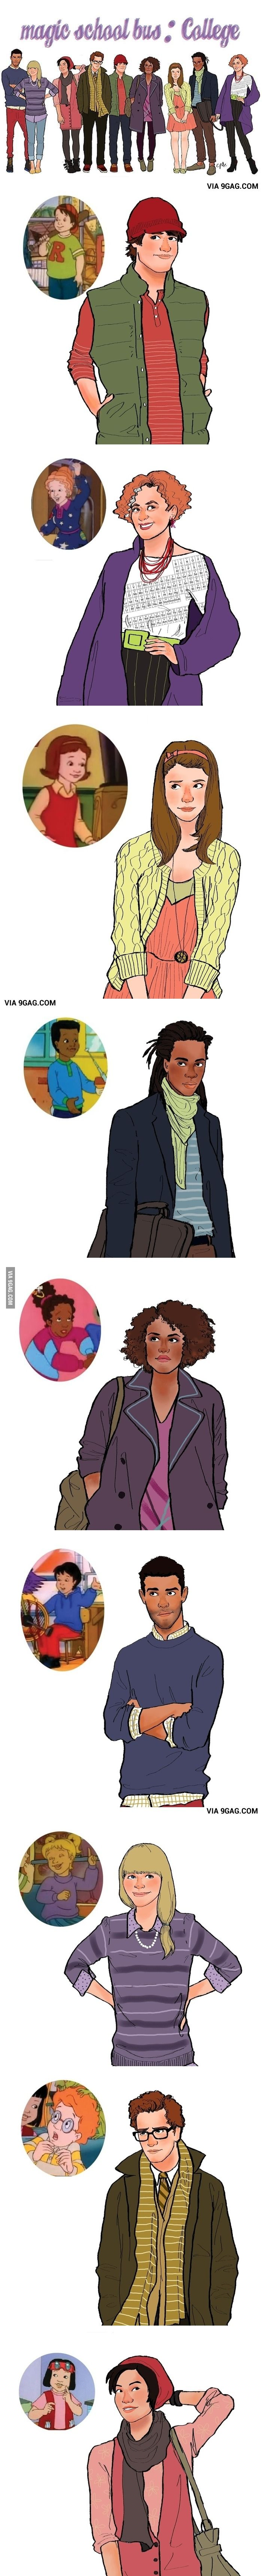 College Aged Magic School Bus Characters- this is pretty much just awesome.  I had a professor who looked pretty much exactly like Prof. Frizzle.